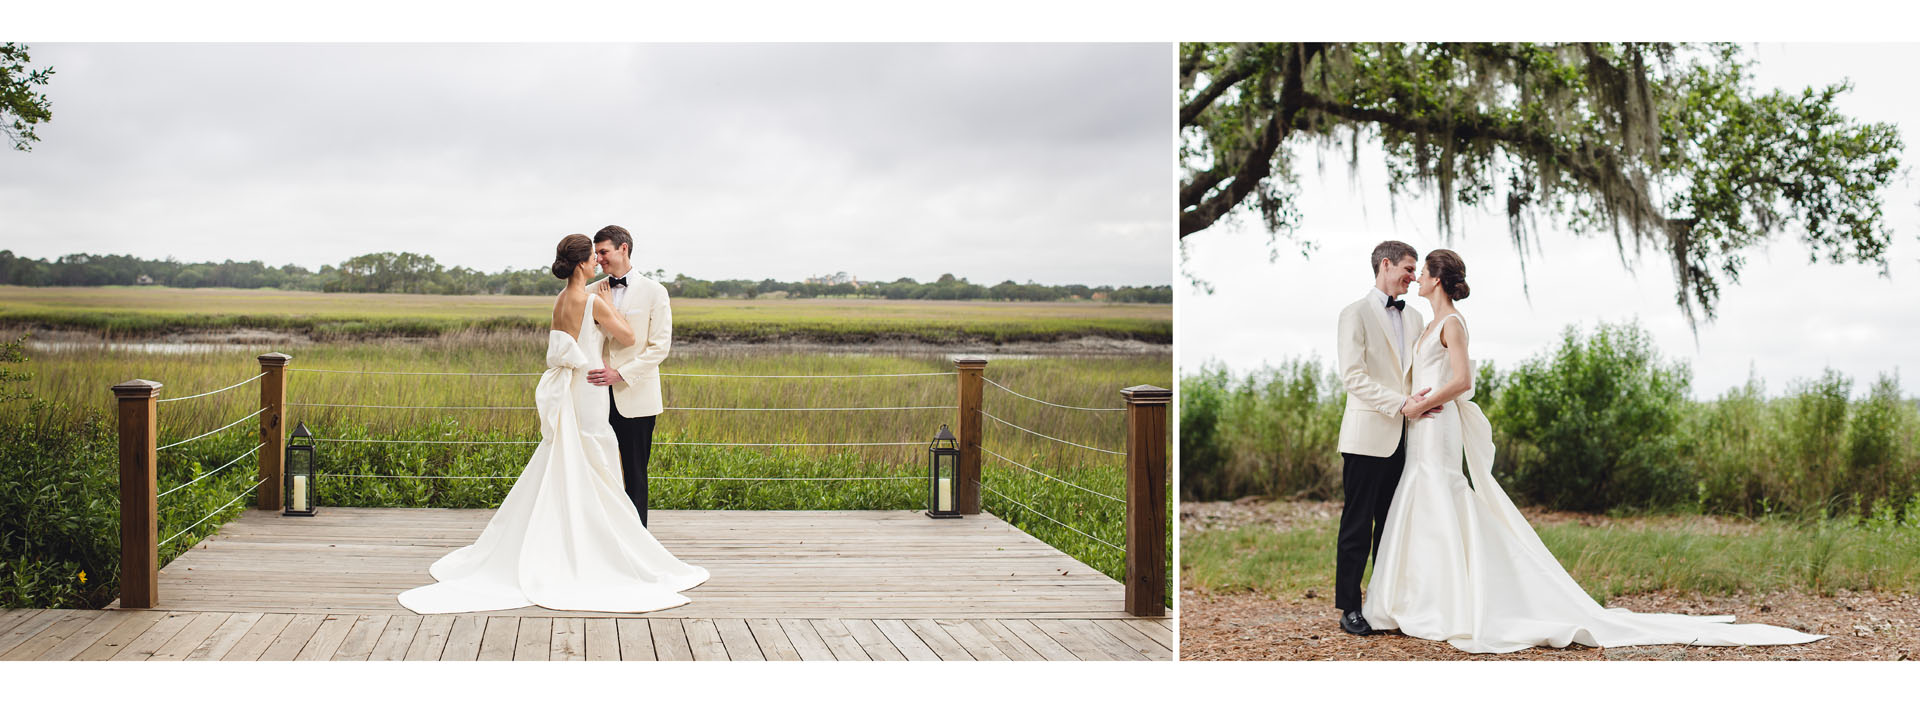 Kiawah Island Wedding